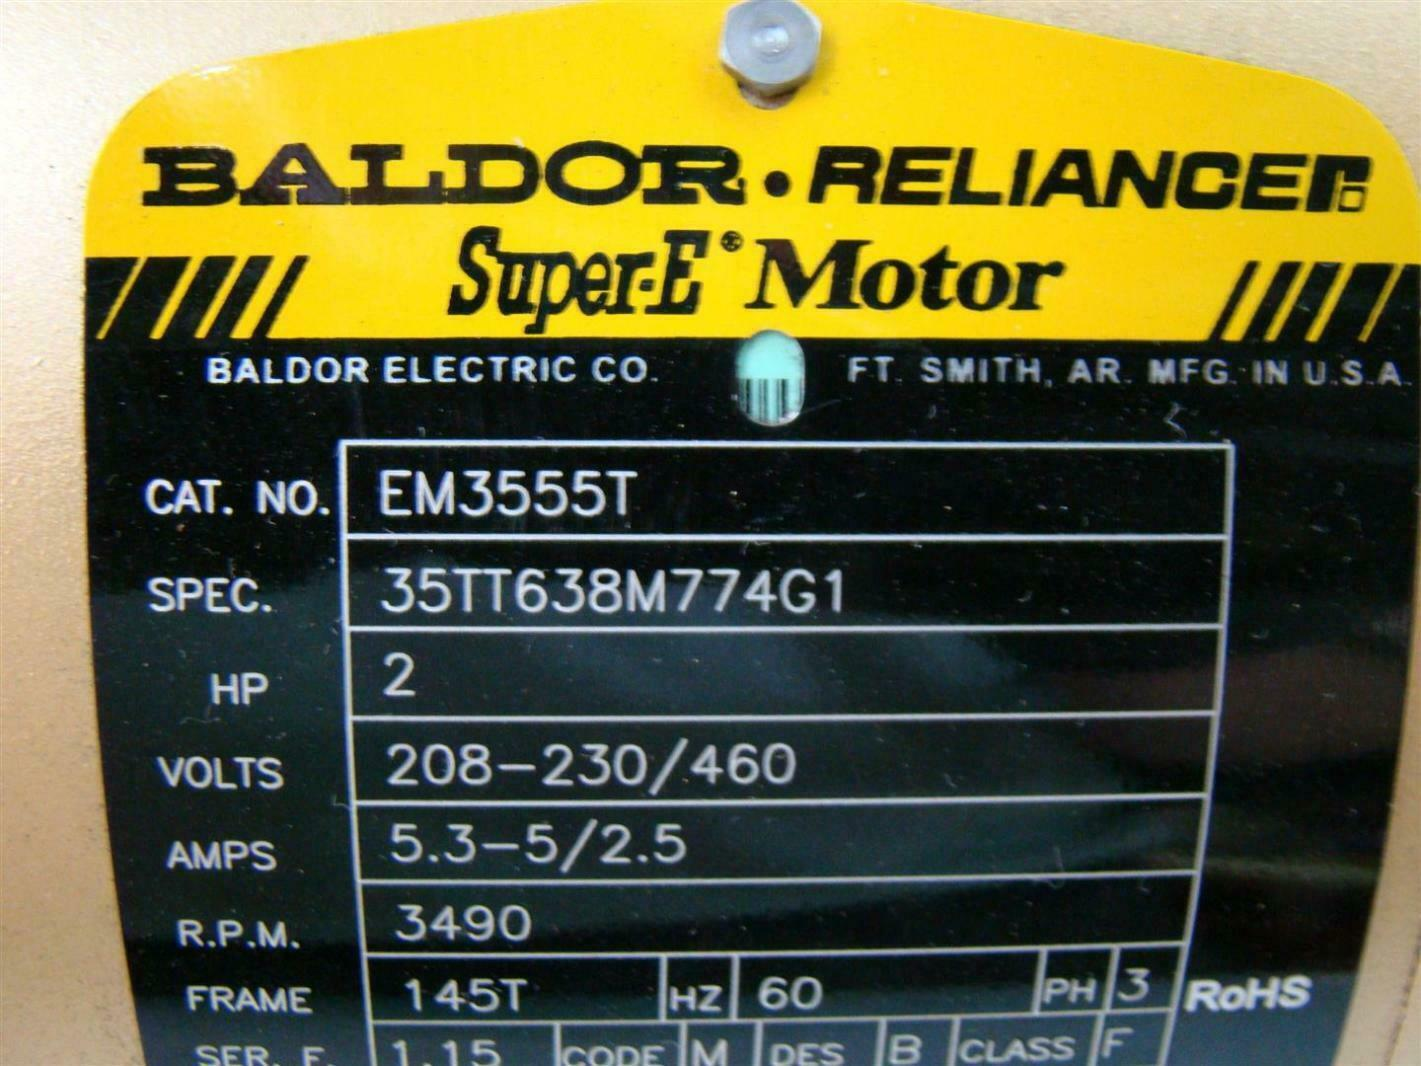 hight resolution of agh169 baldor reliance super e motor 2hp 208 230 460v 53 5 25amps baldor reliance motor wiring diagram